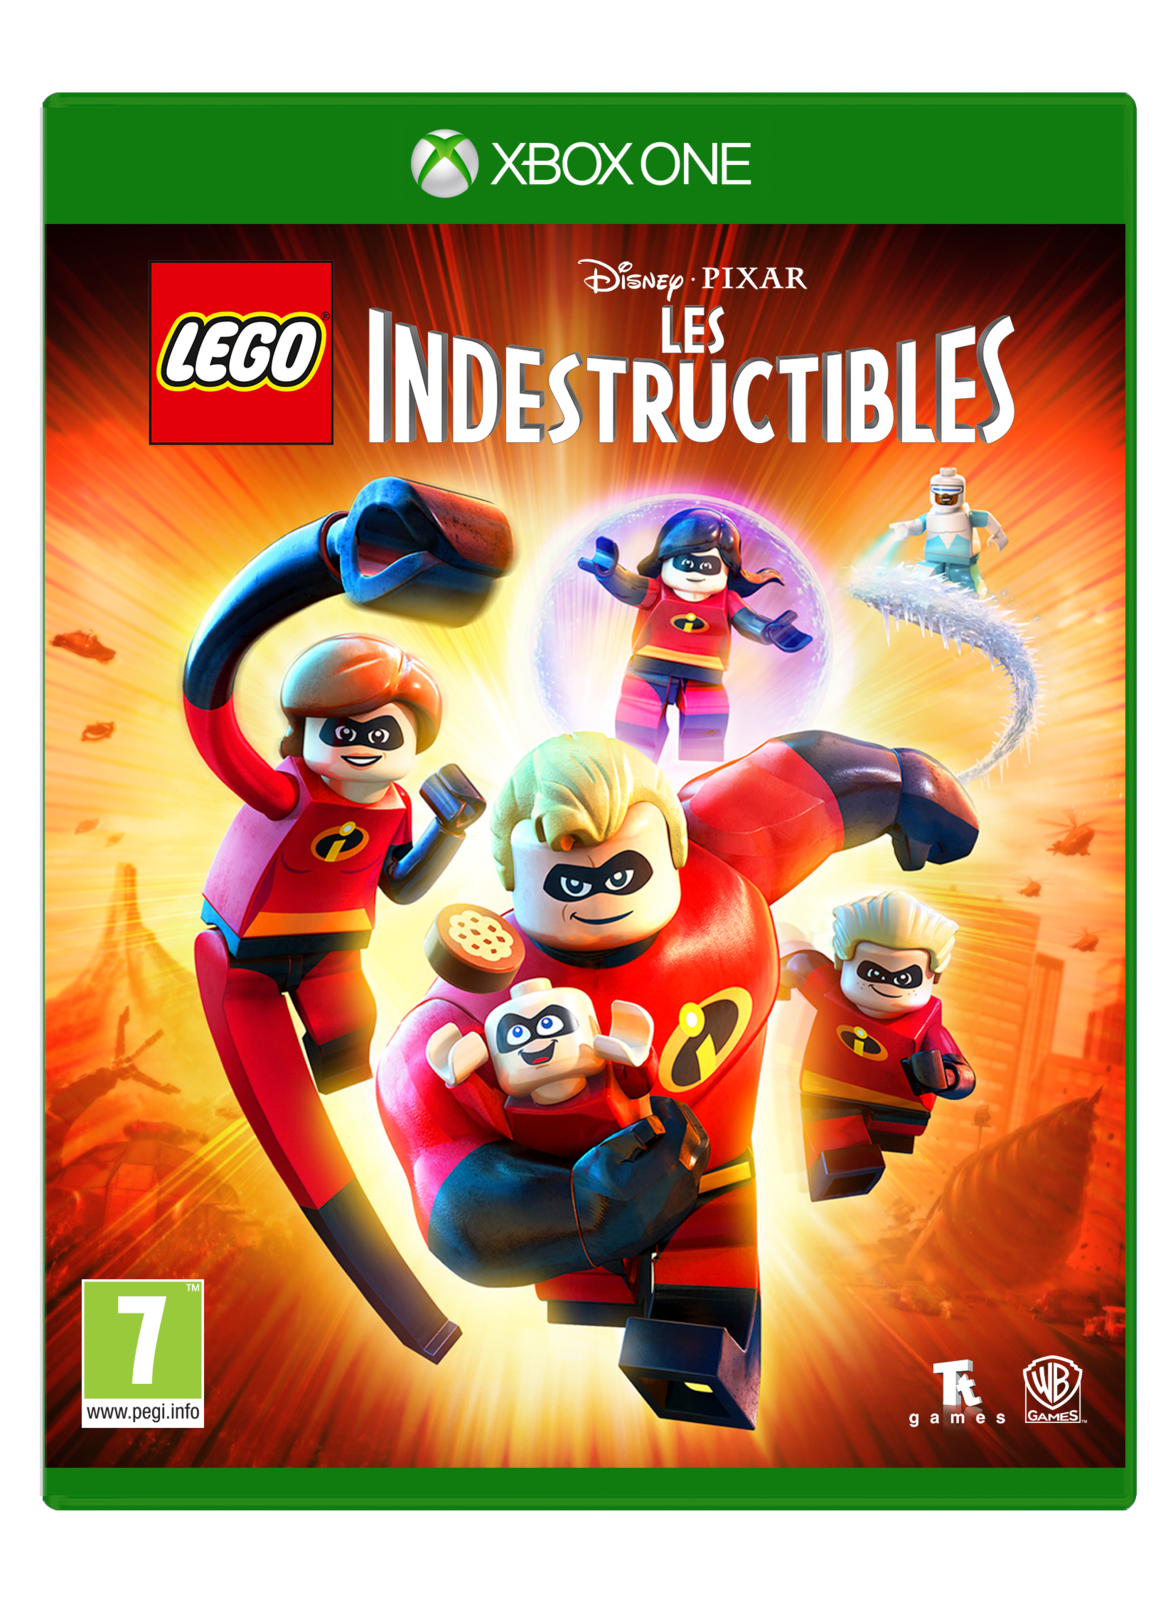 [TEST] LEGO LES INDESTRUCTIBLES XBOX ONE X : une formule déjà vue mais costaude